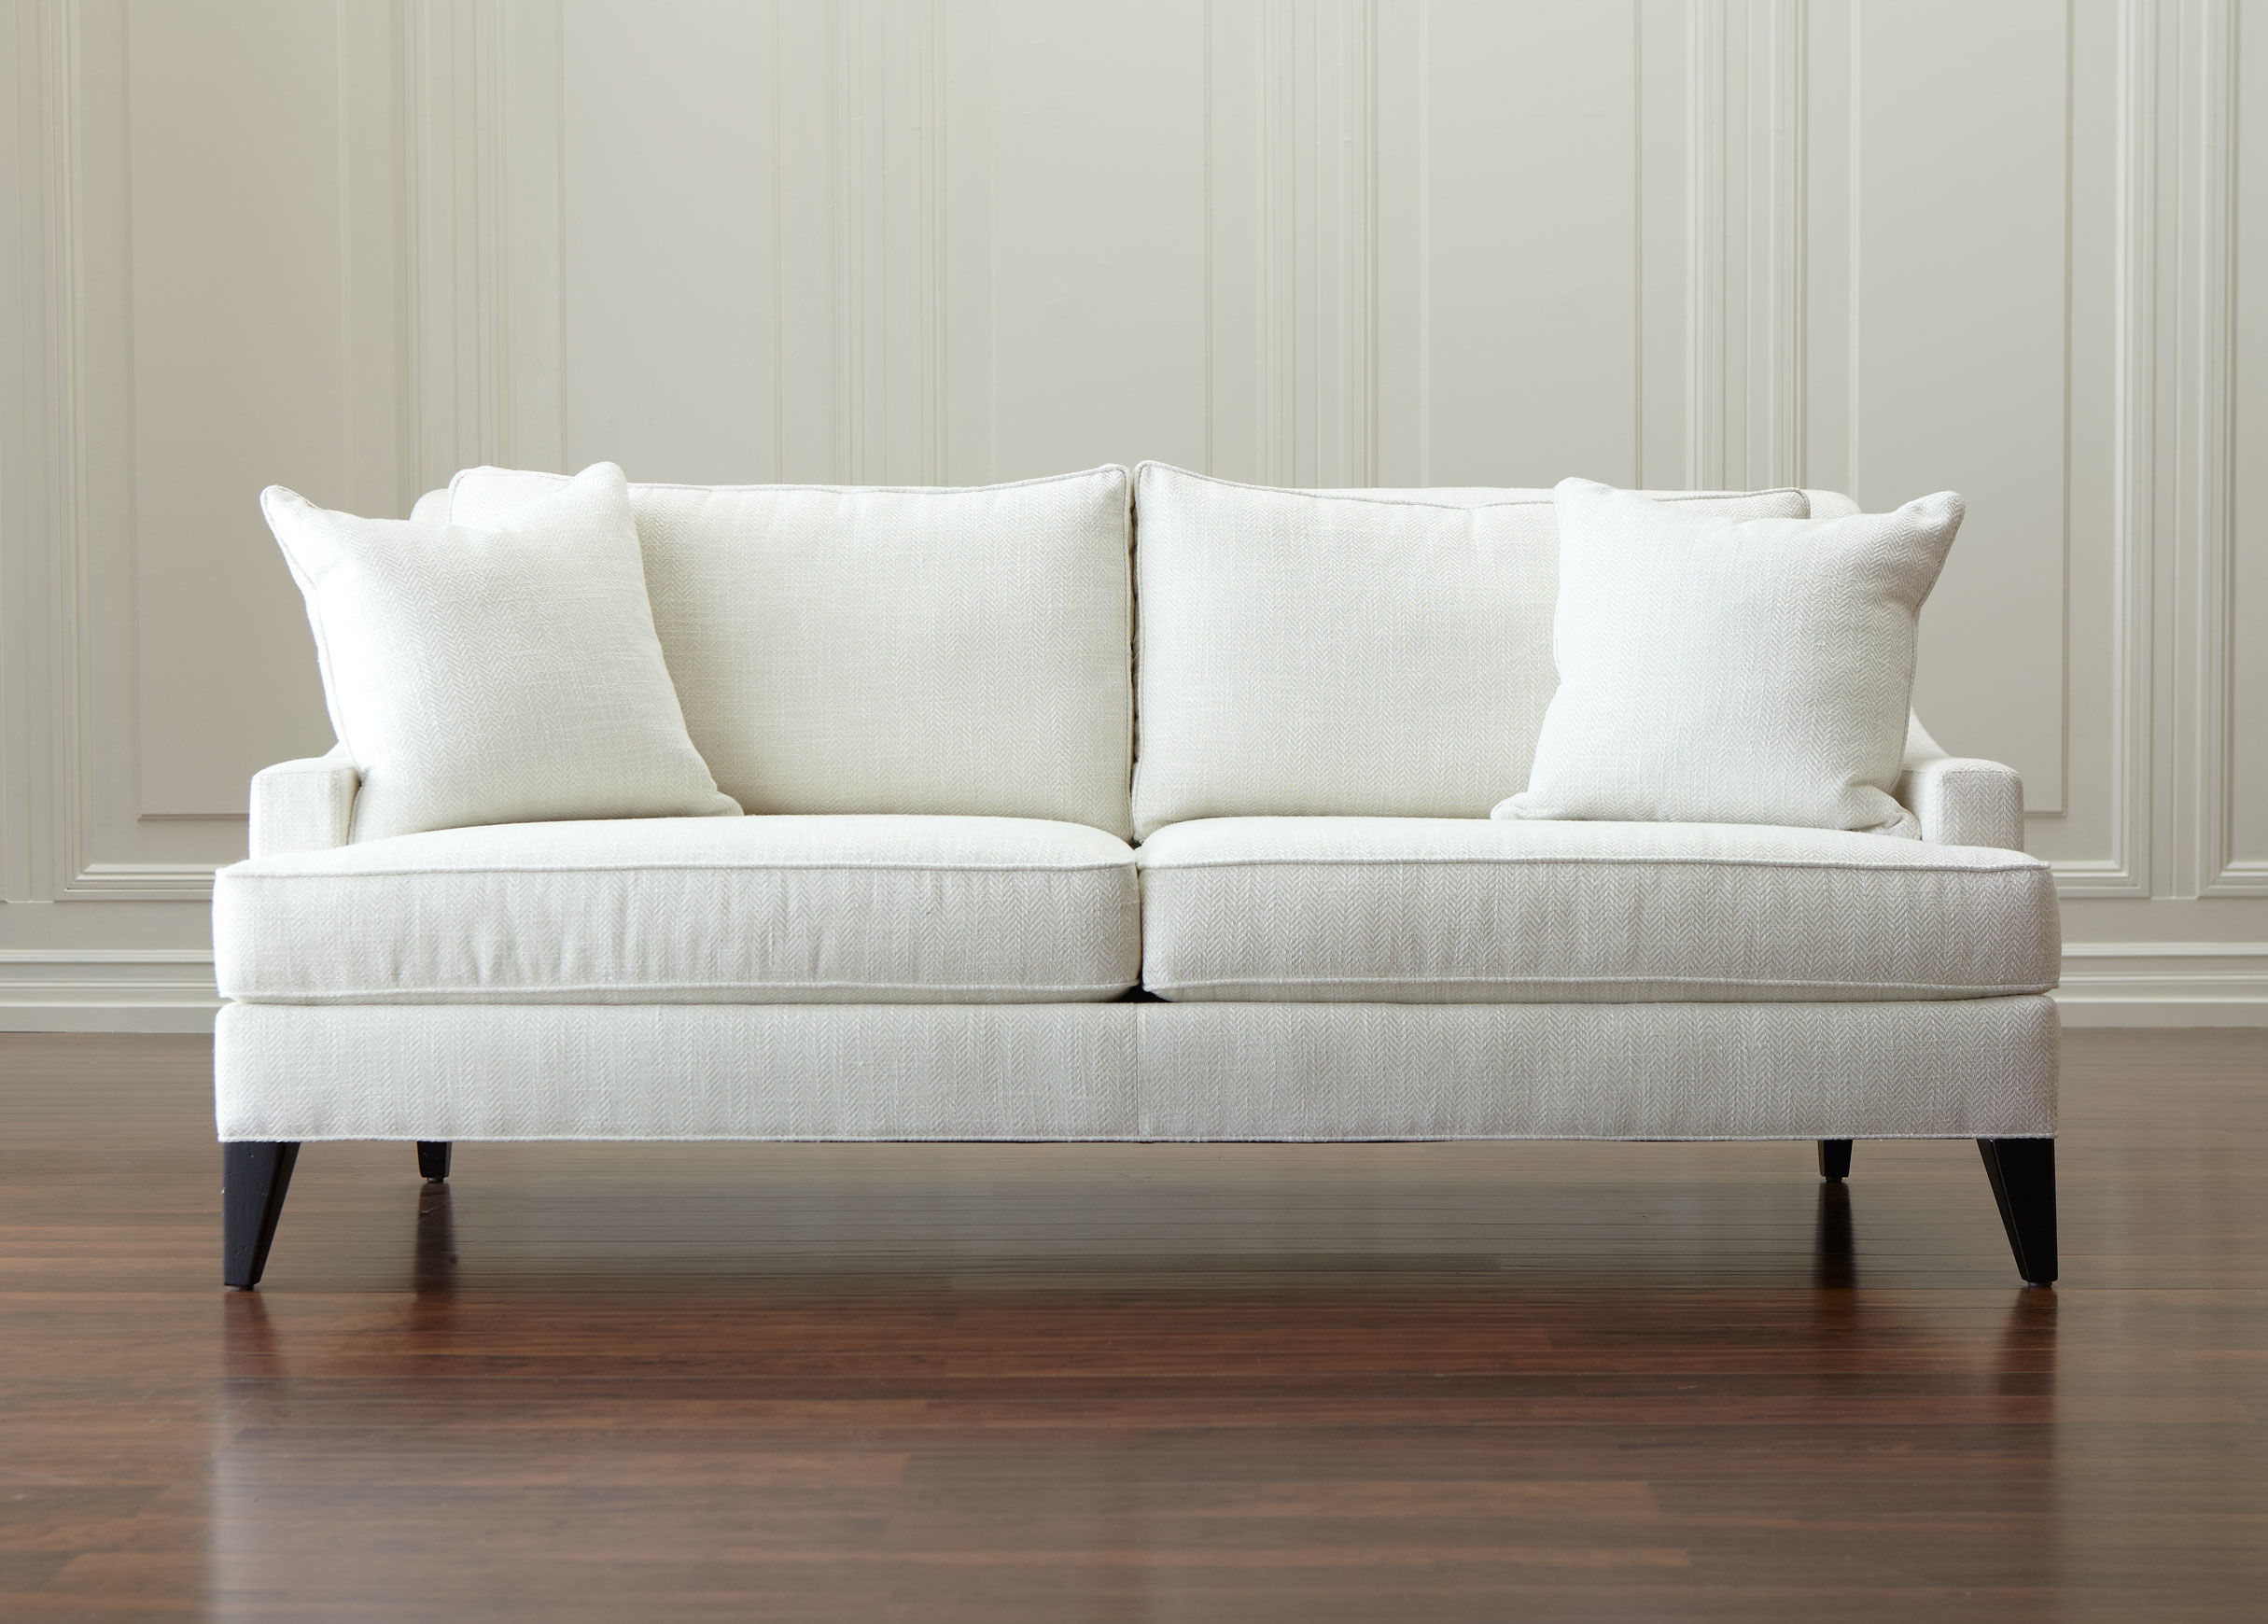 ethan allen sofa bed crate and barrel leather best sleeper sofas homesfeed